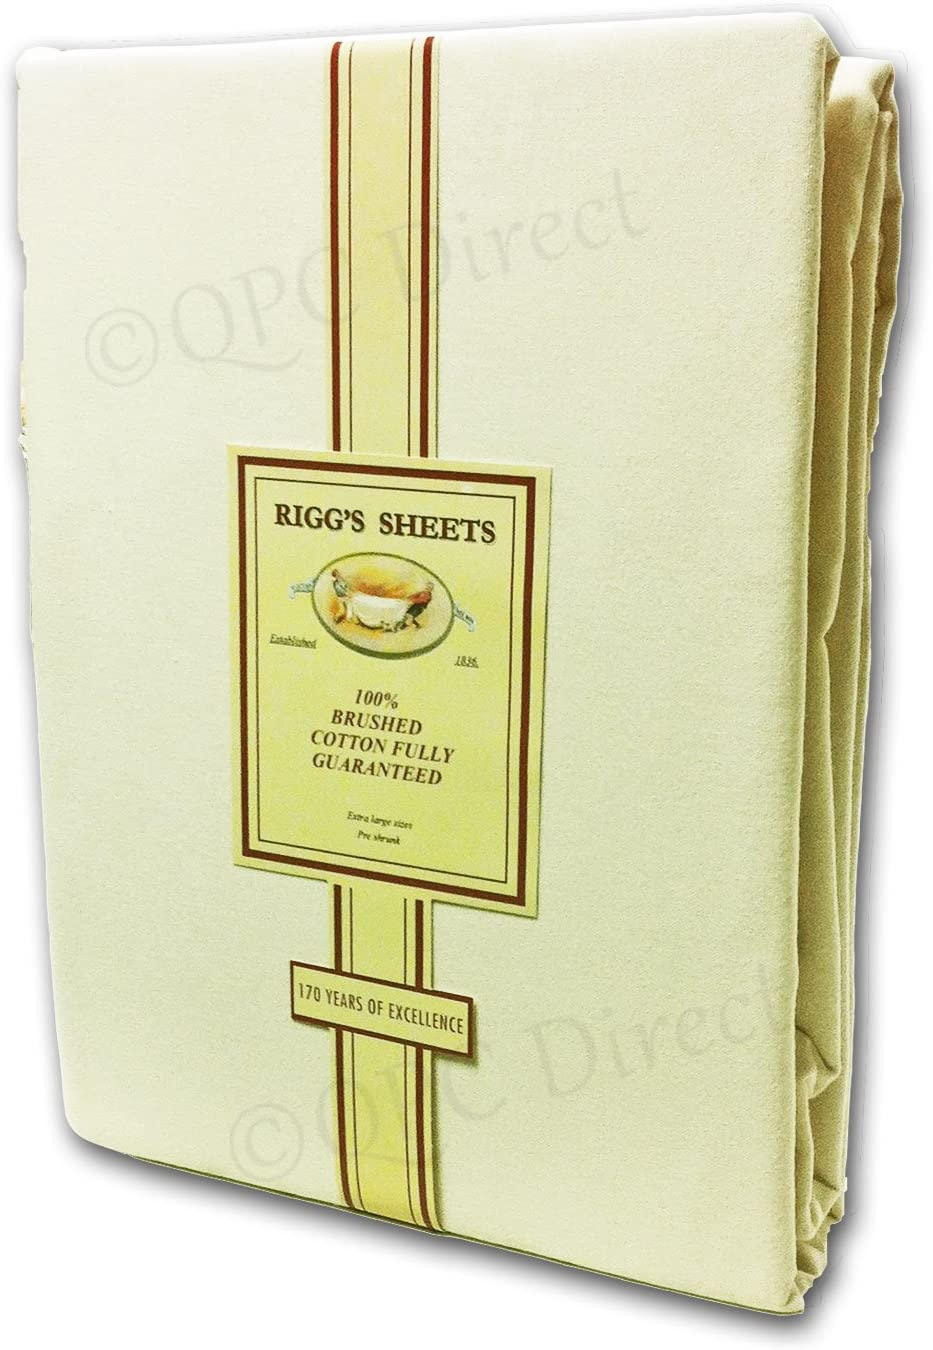 Pillowcase Riggs Premium Brushed Cotton Sheets IVORY CREAM flannelette